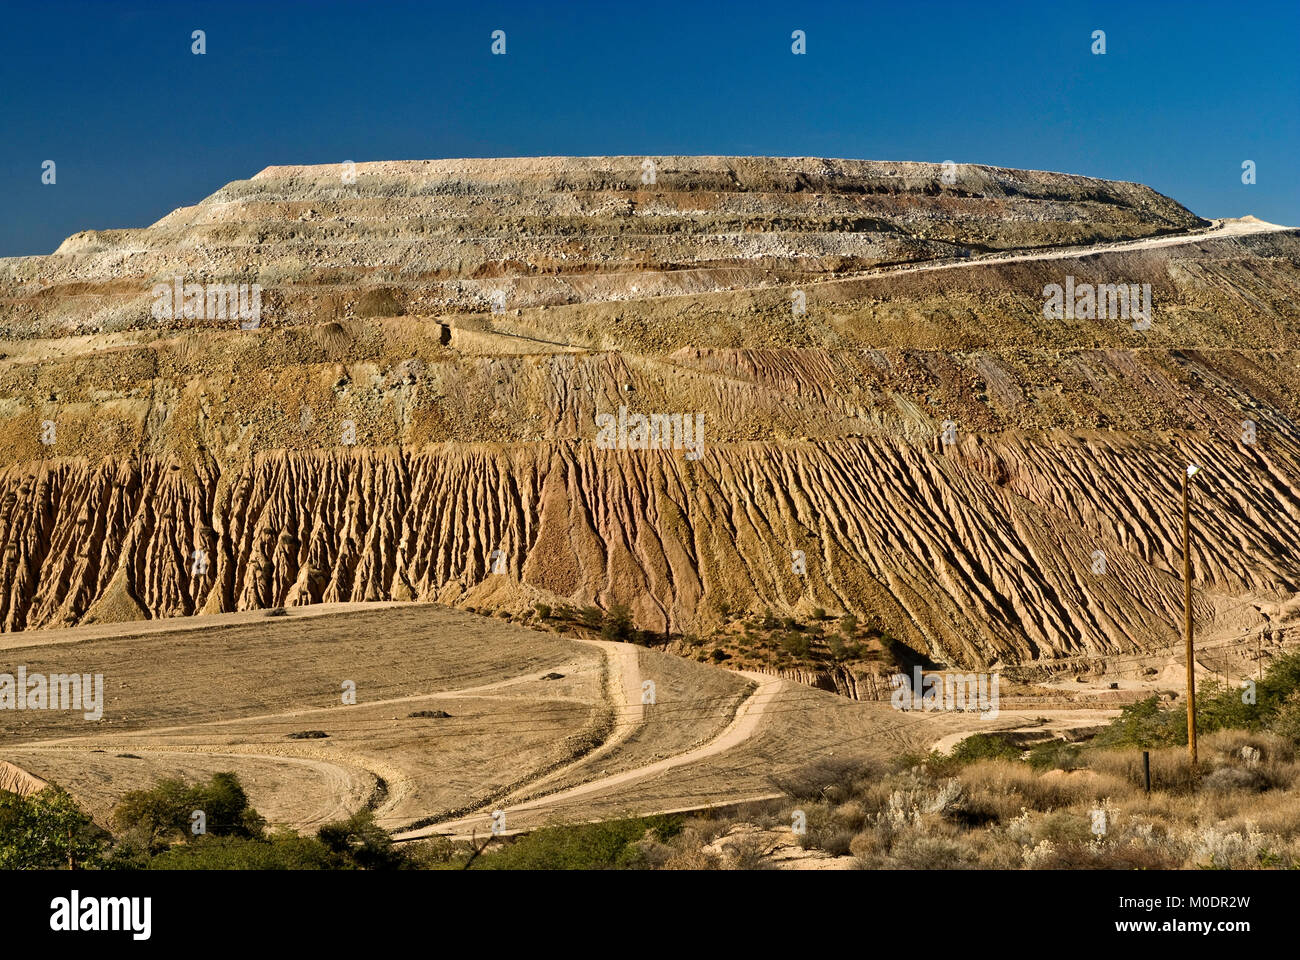 Stockpiles at Freeport-McMoRan Copper & Gold Inc. Tyrone Mine near Silver City, New Mexico, USA - Stock Image